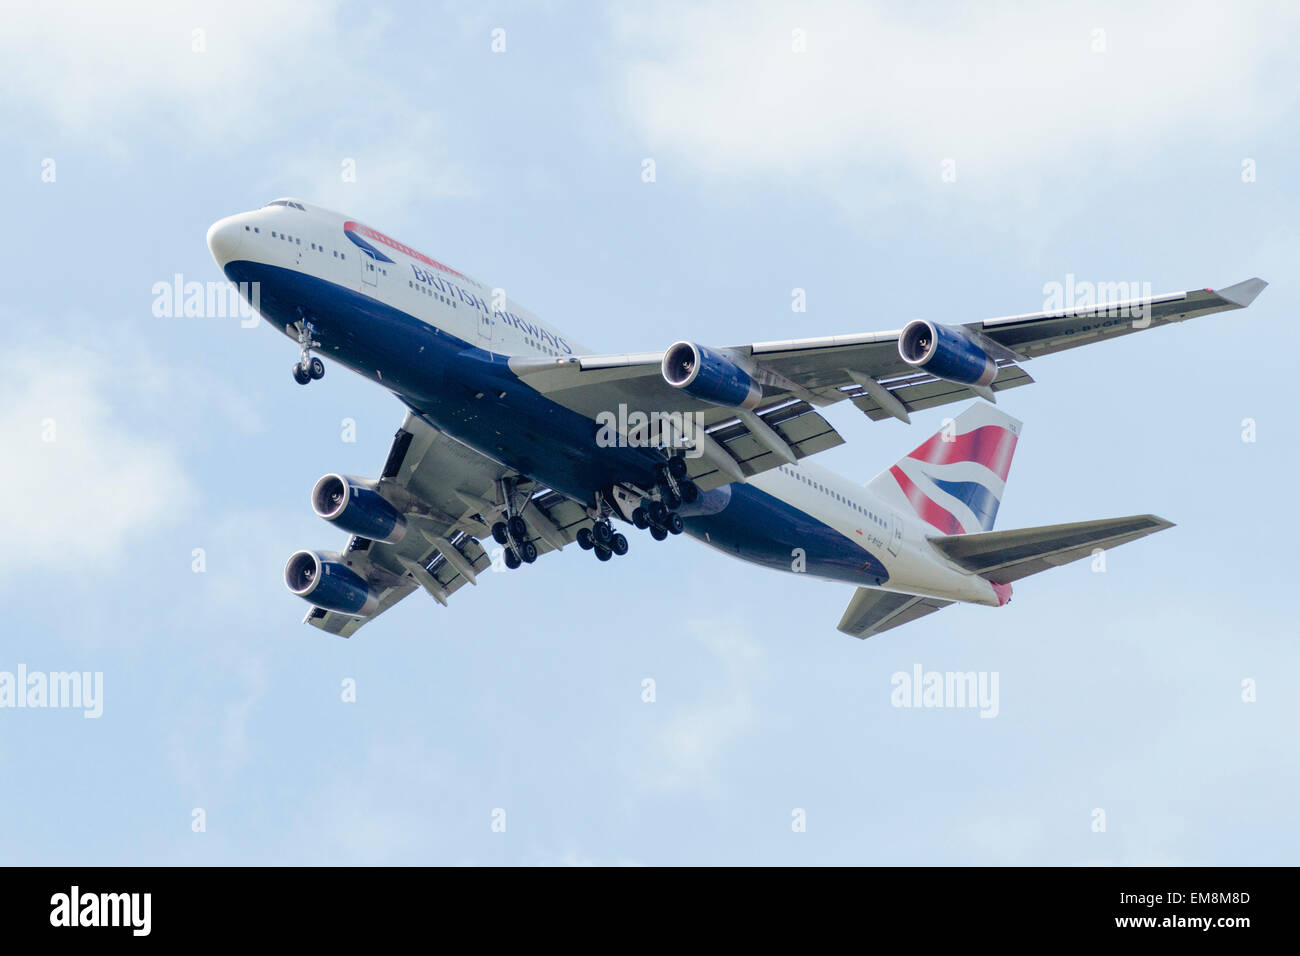 Boeing 747 (G-BYGE) British Airways - Stock Image